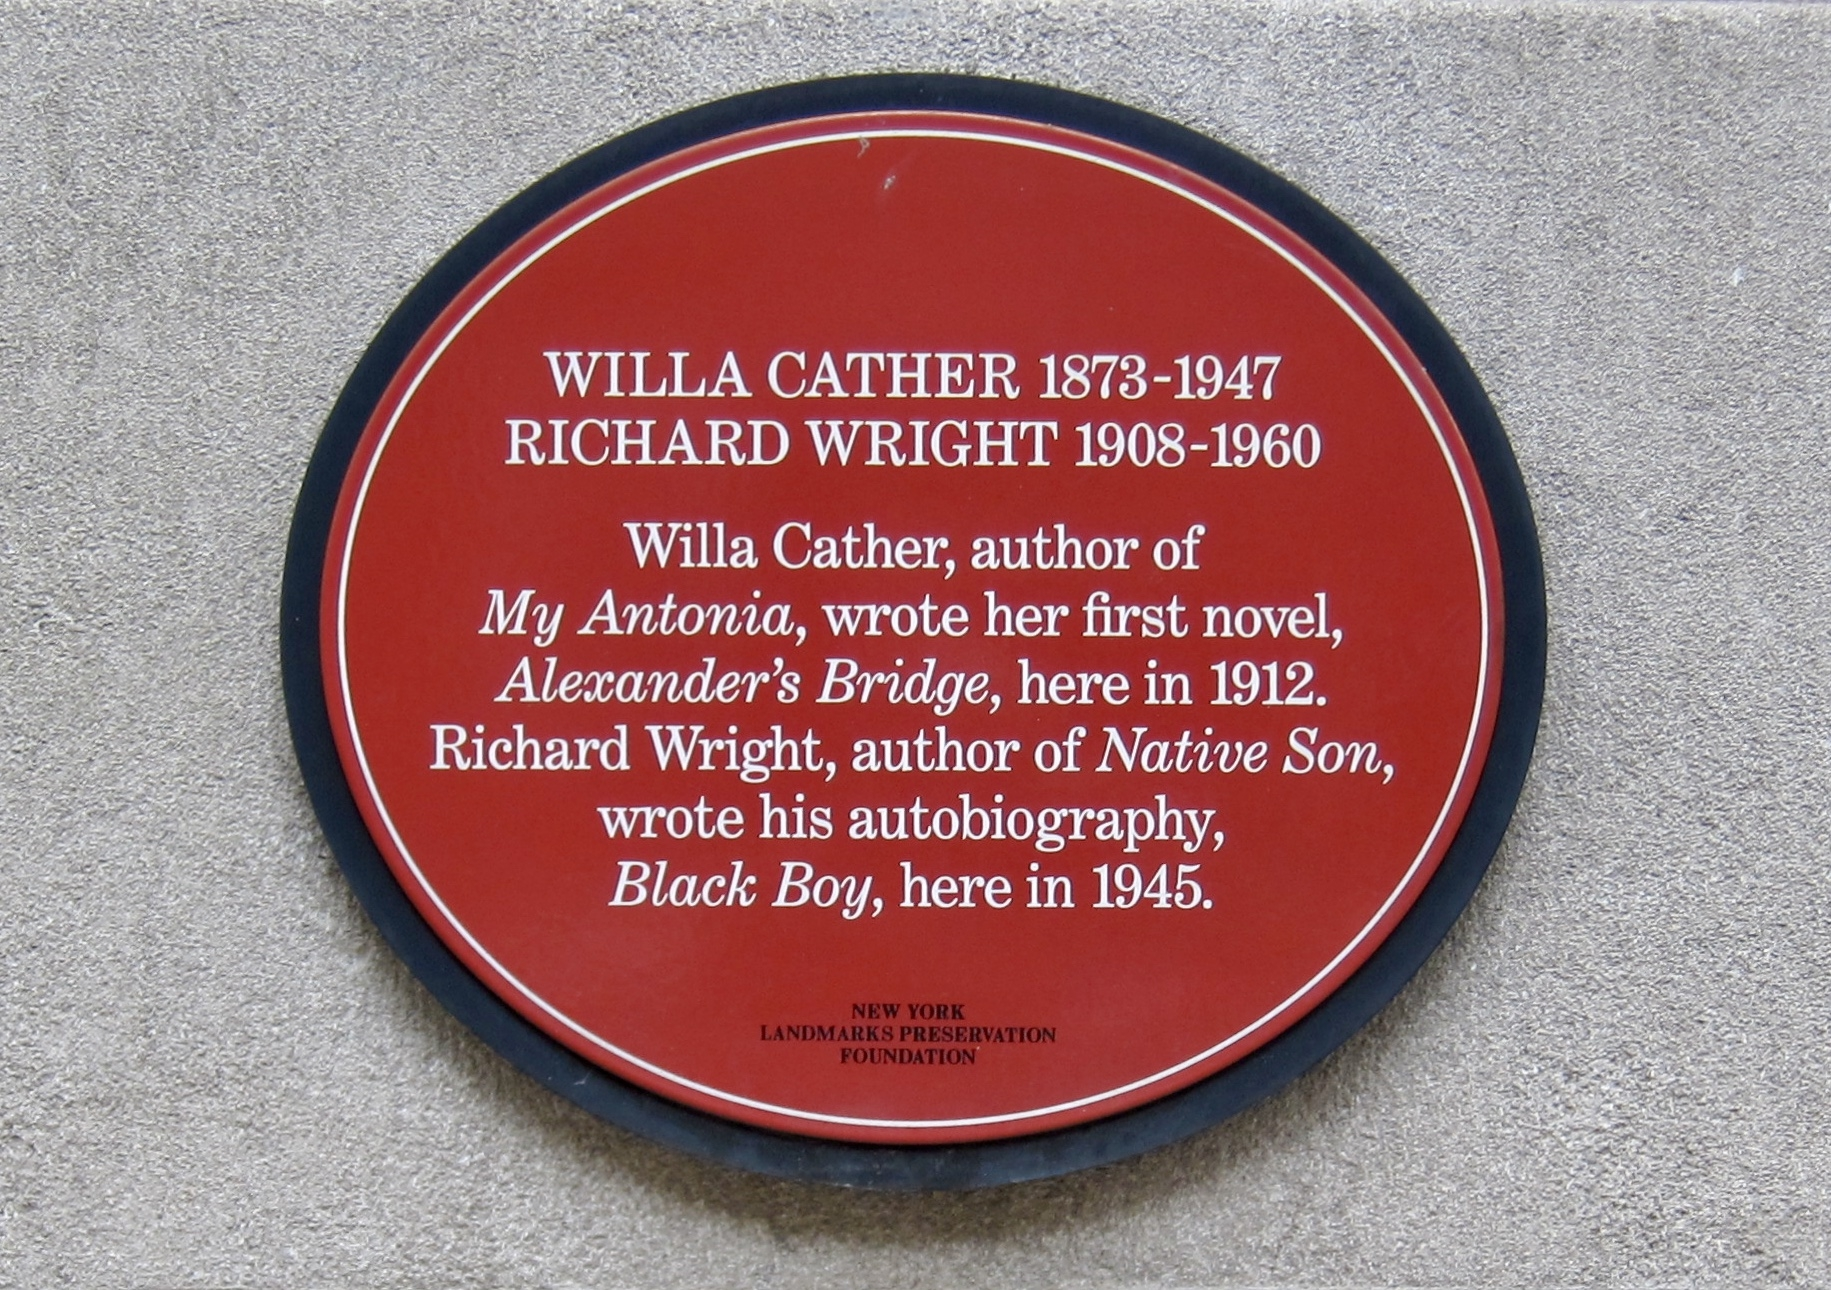 Willa Cather and Richard Wright Marker